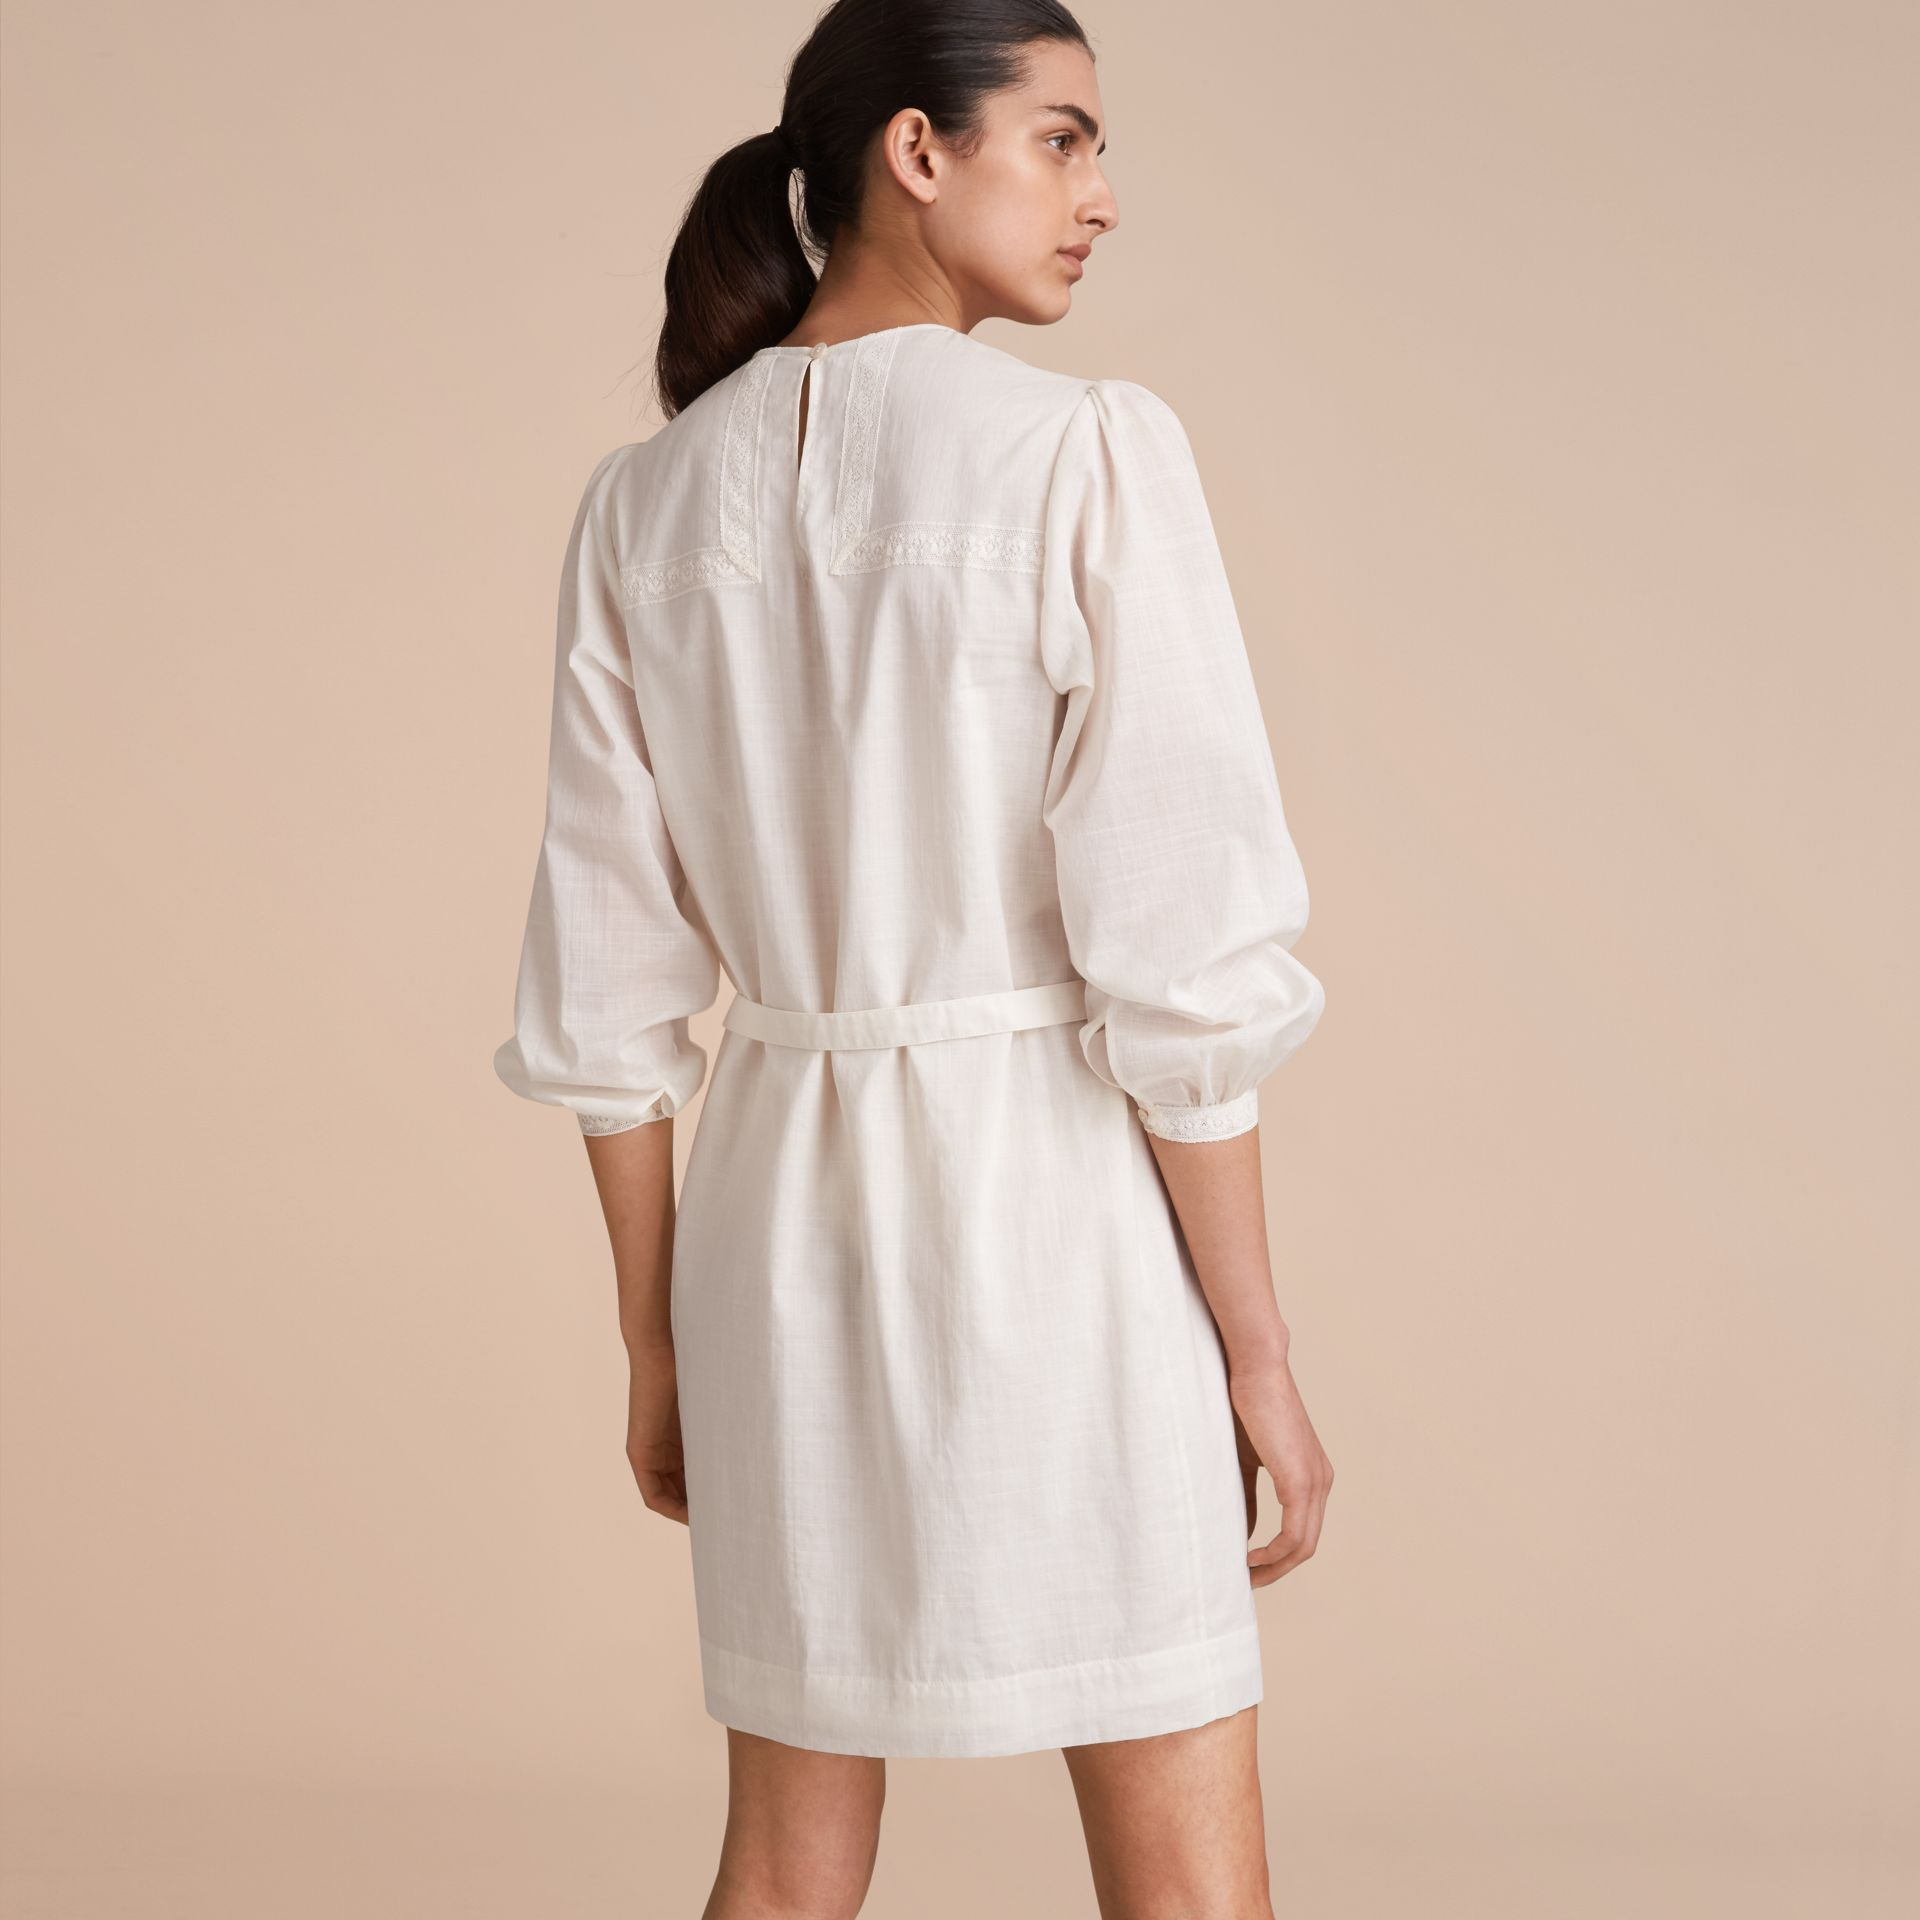 Pintuck and Lace Detail Cotton Dress in Natural White - Women | Burberry - gallery image 3